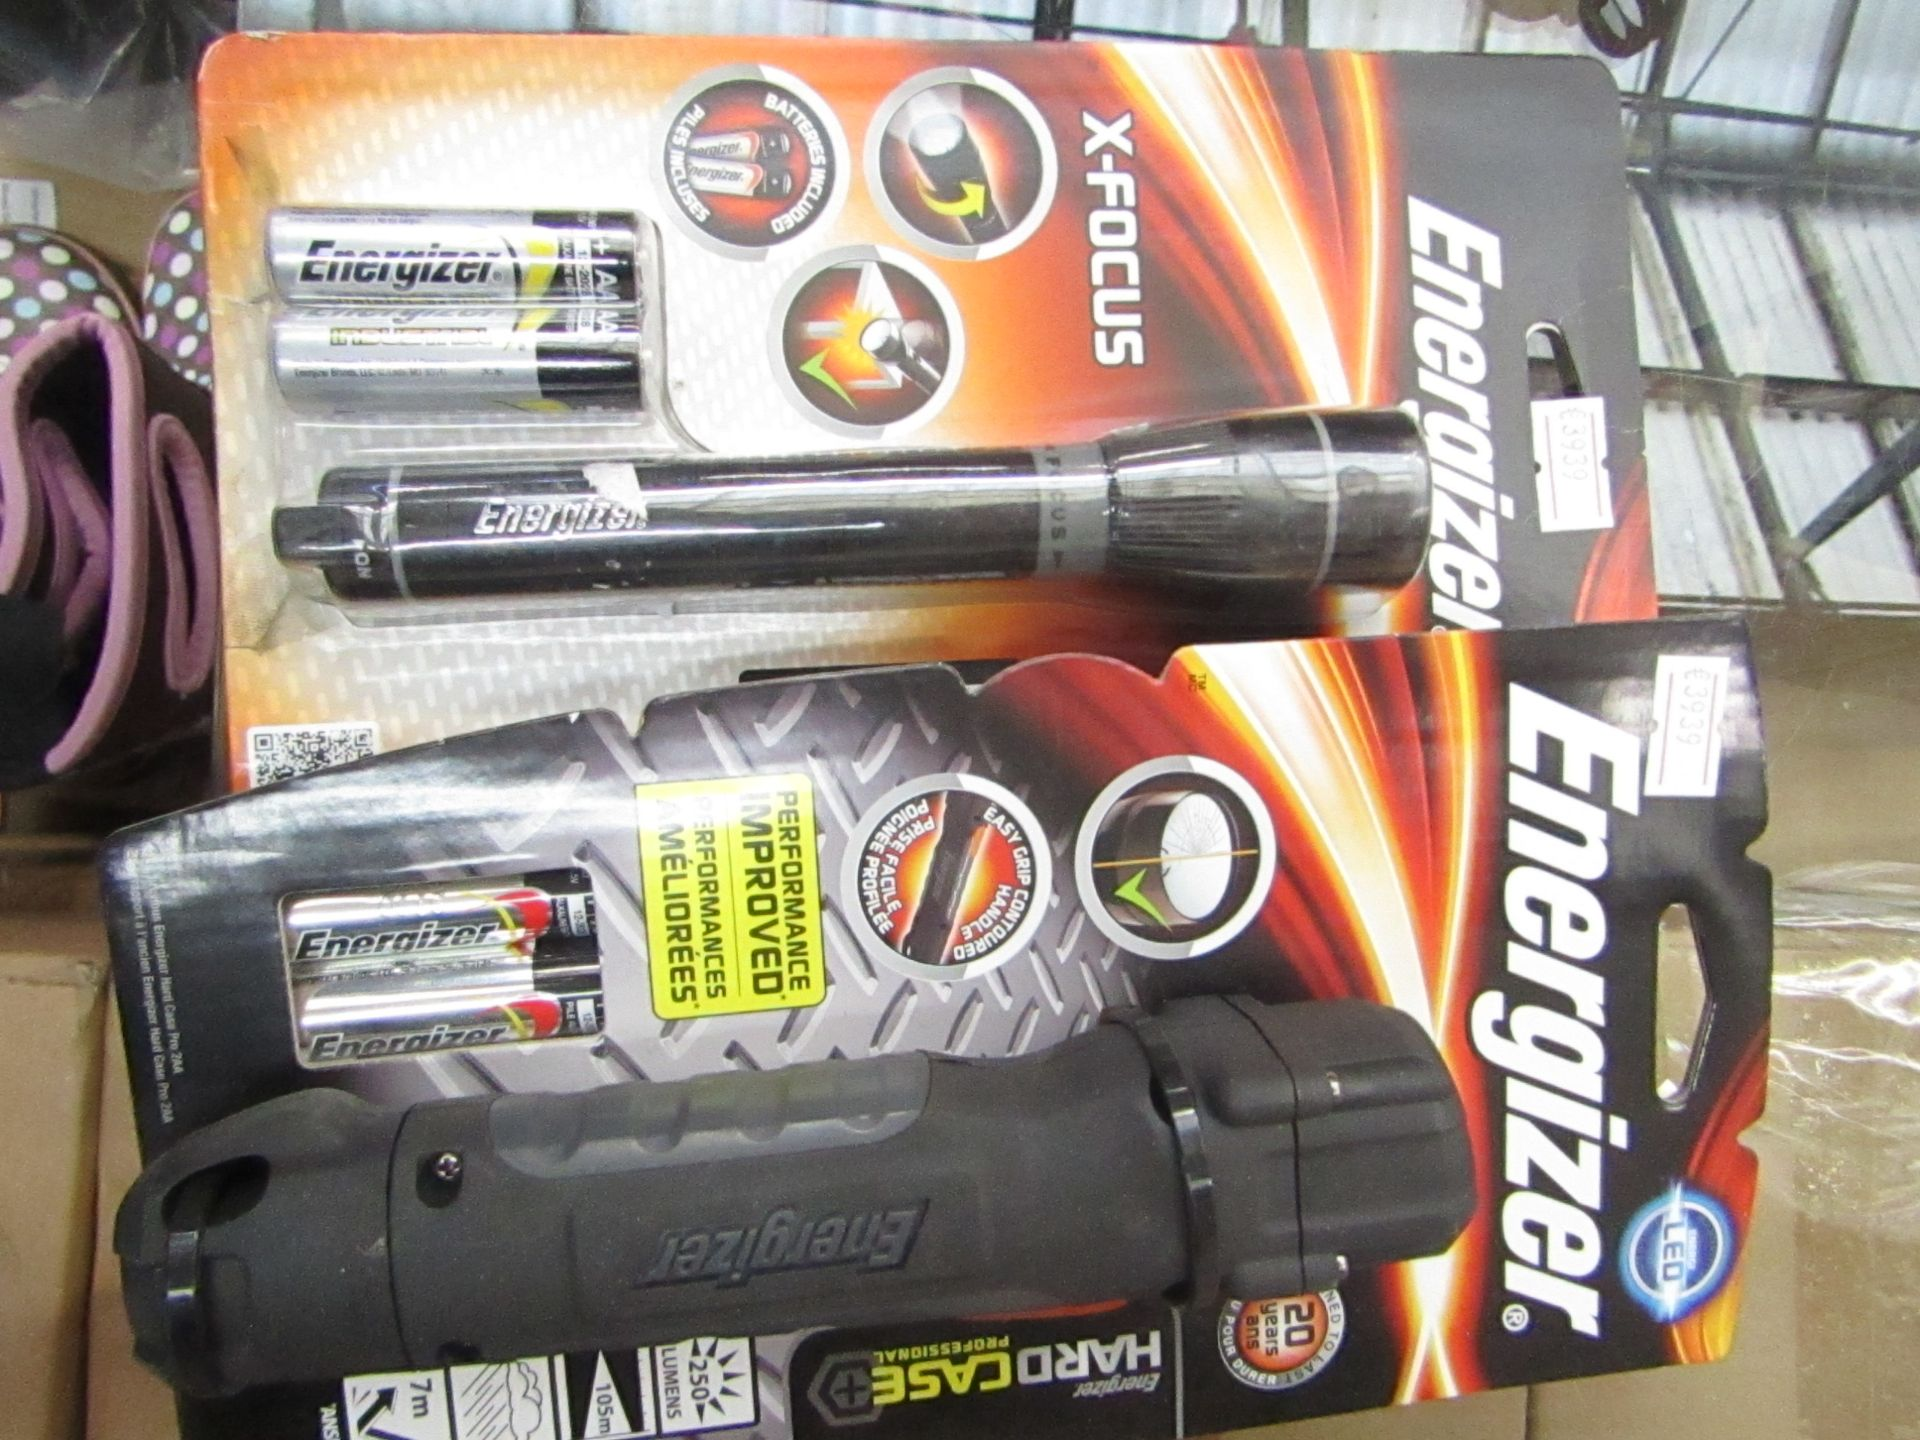 Lot 44 - 2 items being 1 x Energizer Hard Case professional LED torch & 1 x Energizer X Focus Torch both new